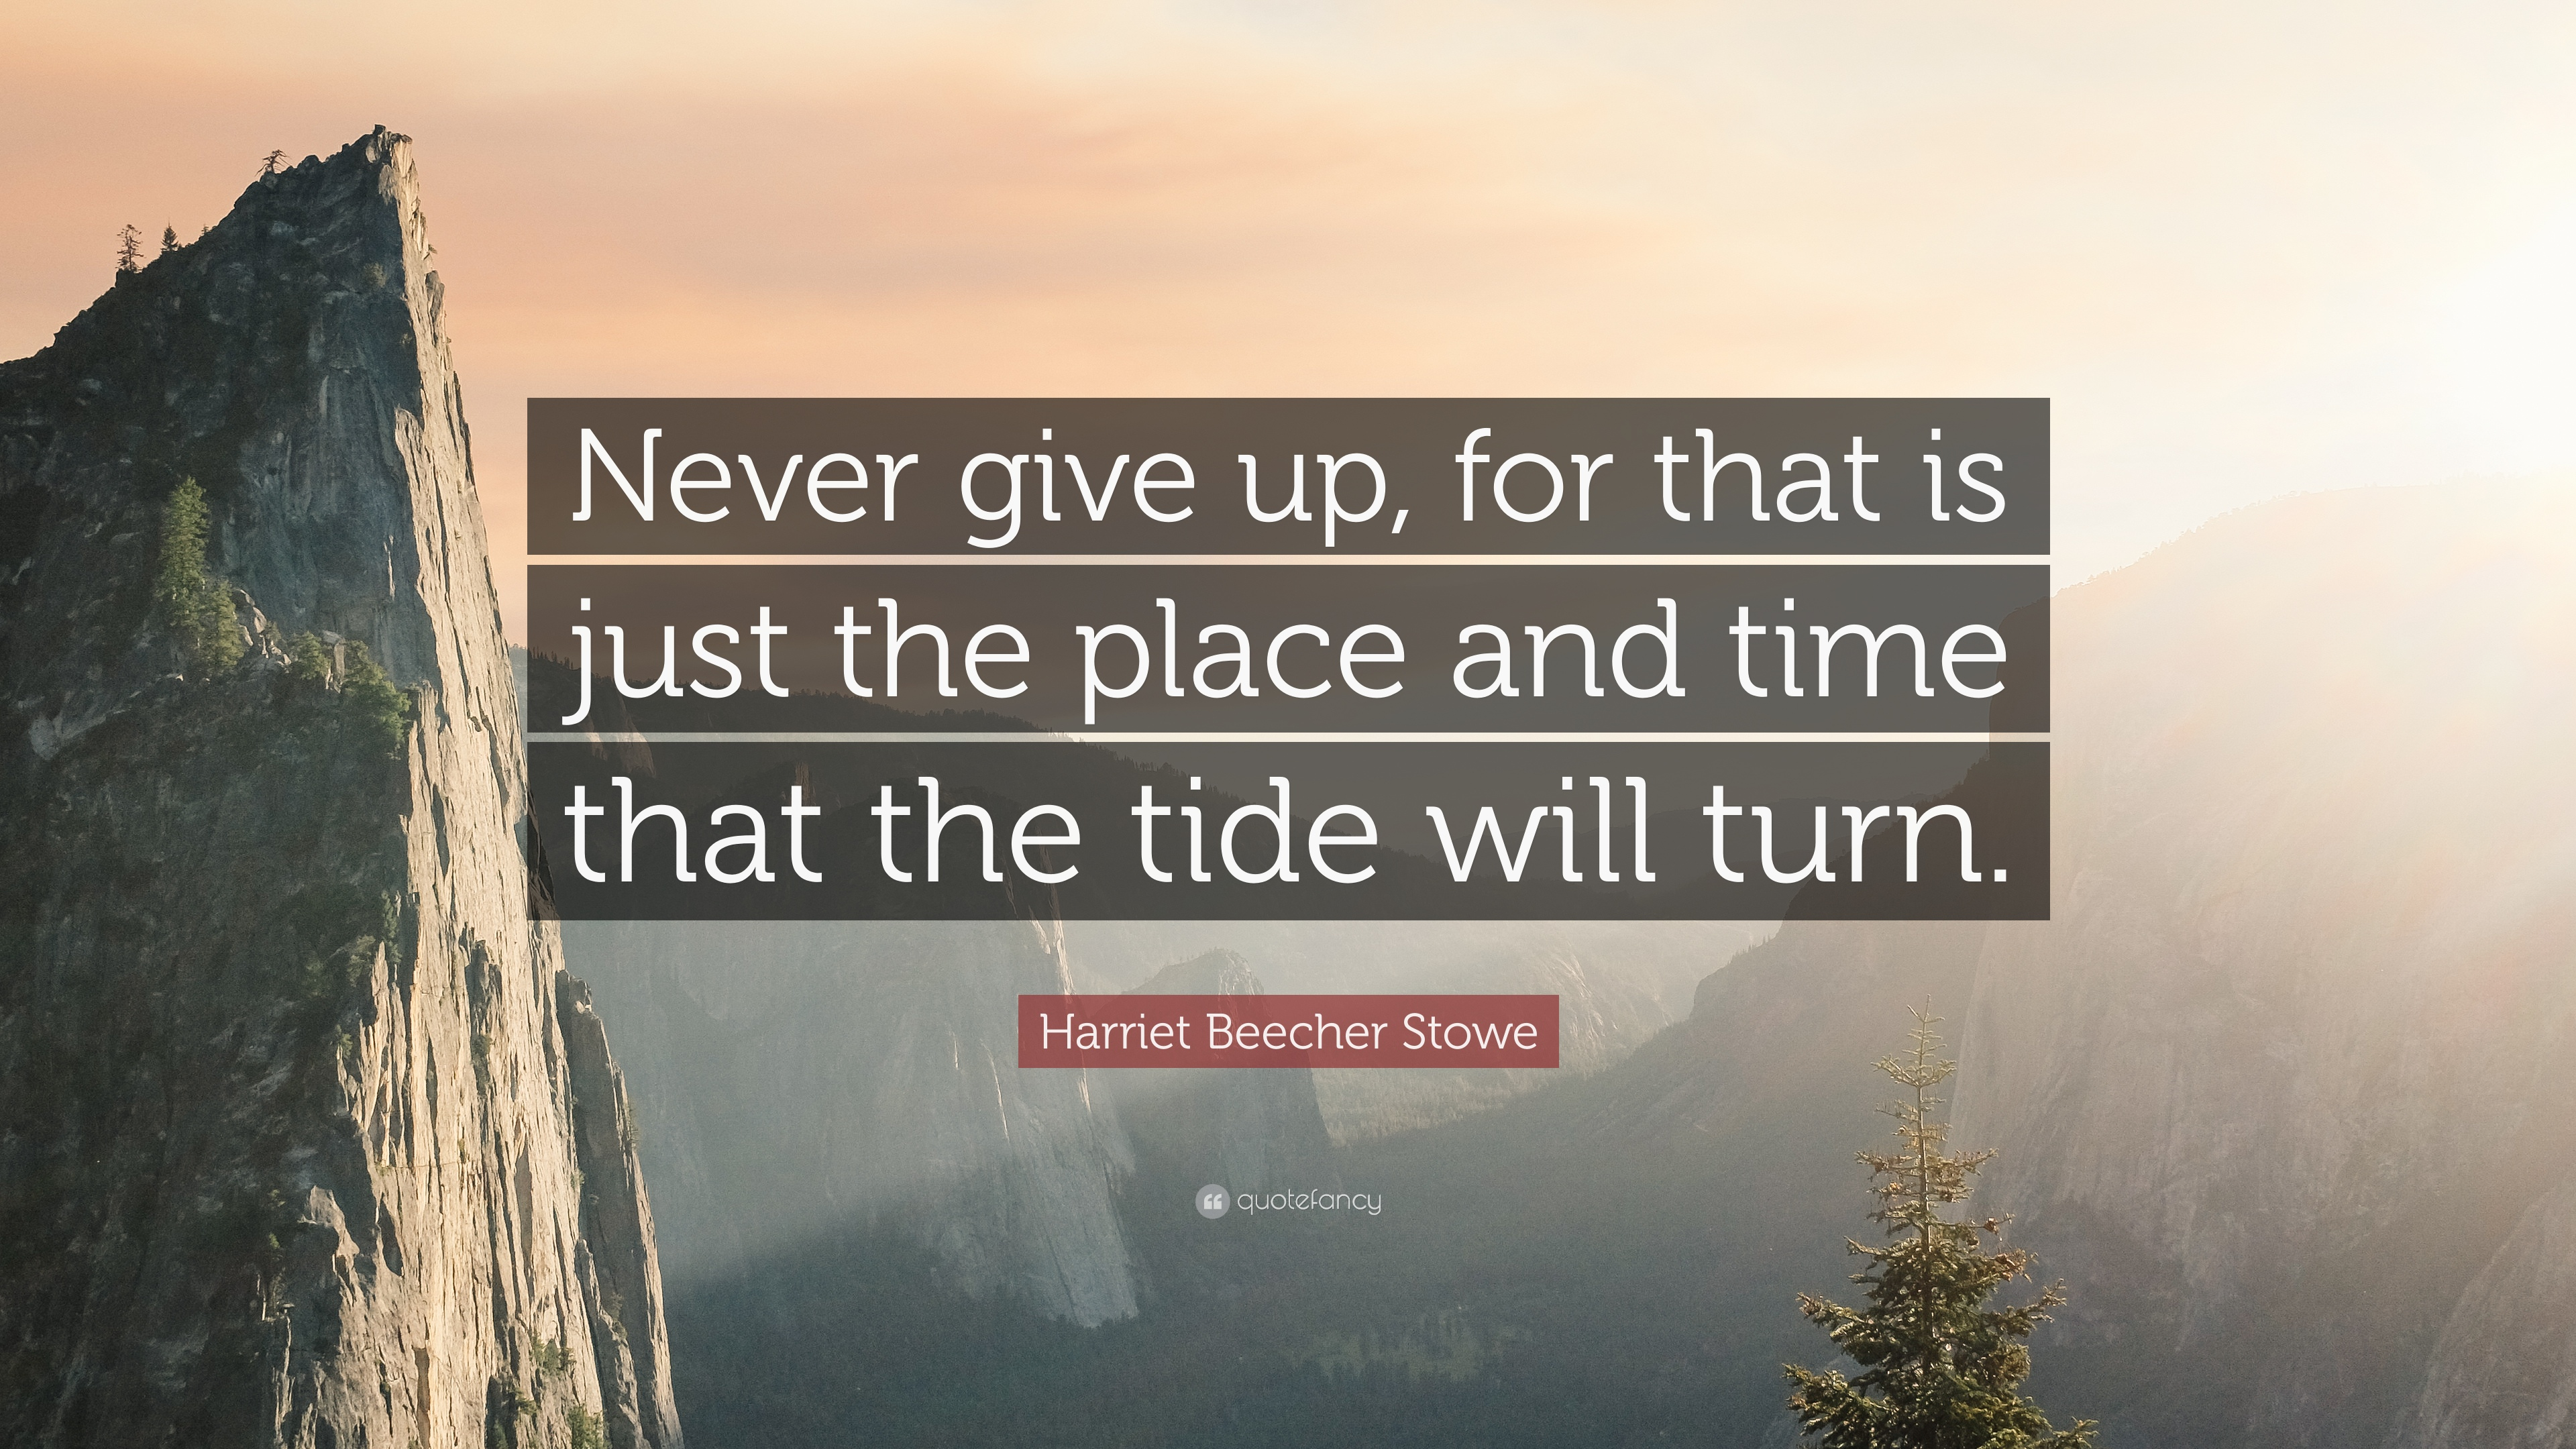 Encouraging Quotes: U201cNever Give Up, For That Is Just The Place And Time